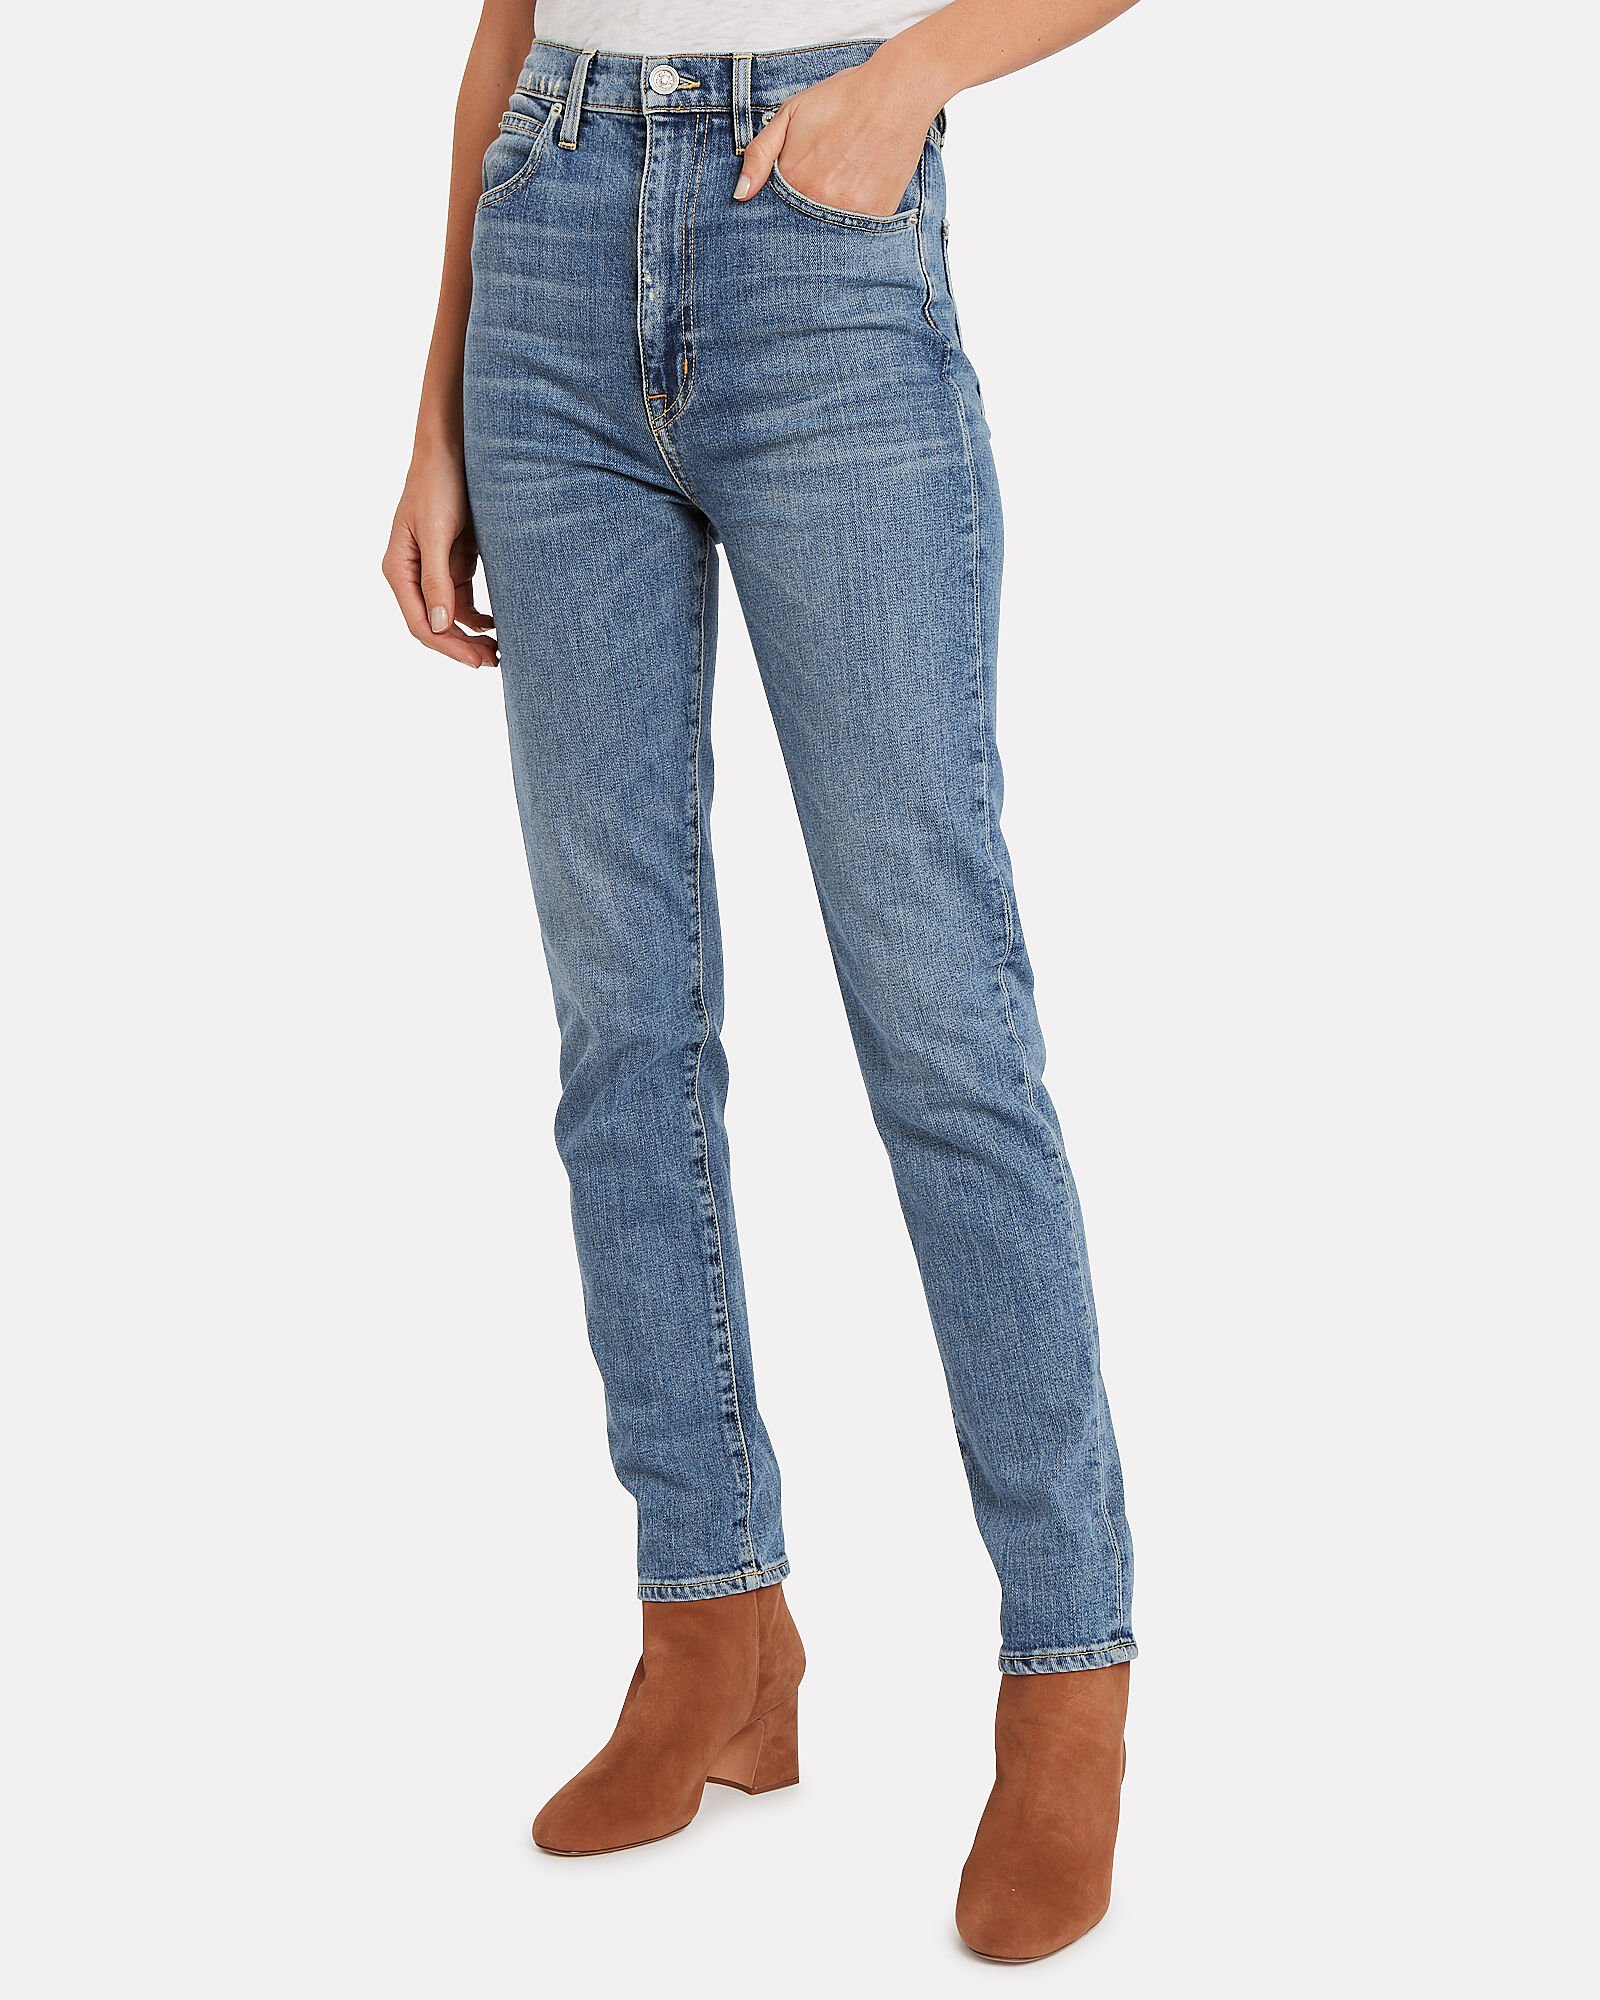 Beatnik Slim High-Rise Jeans, DENIM, hi-res